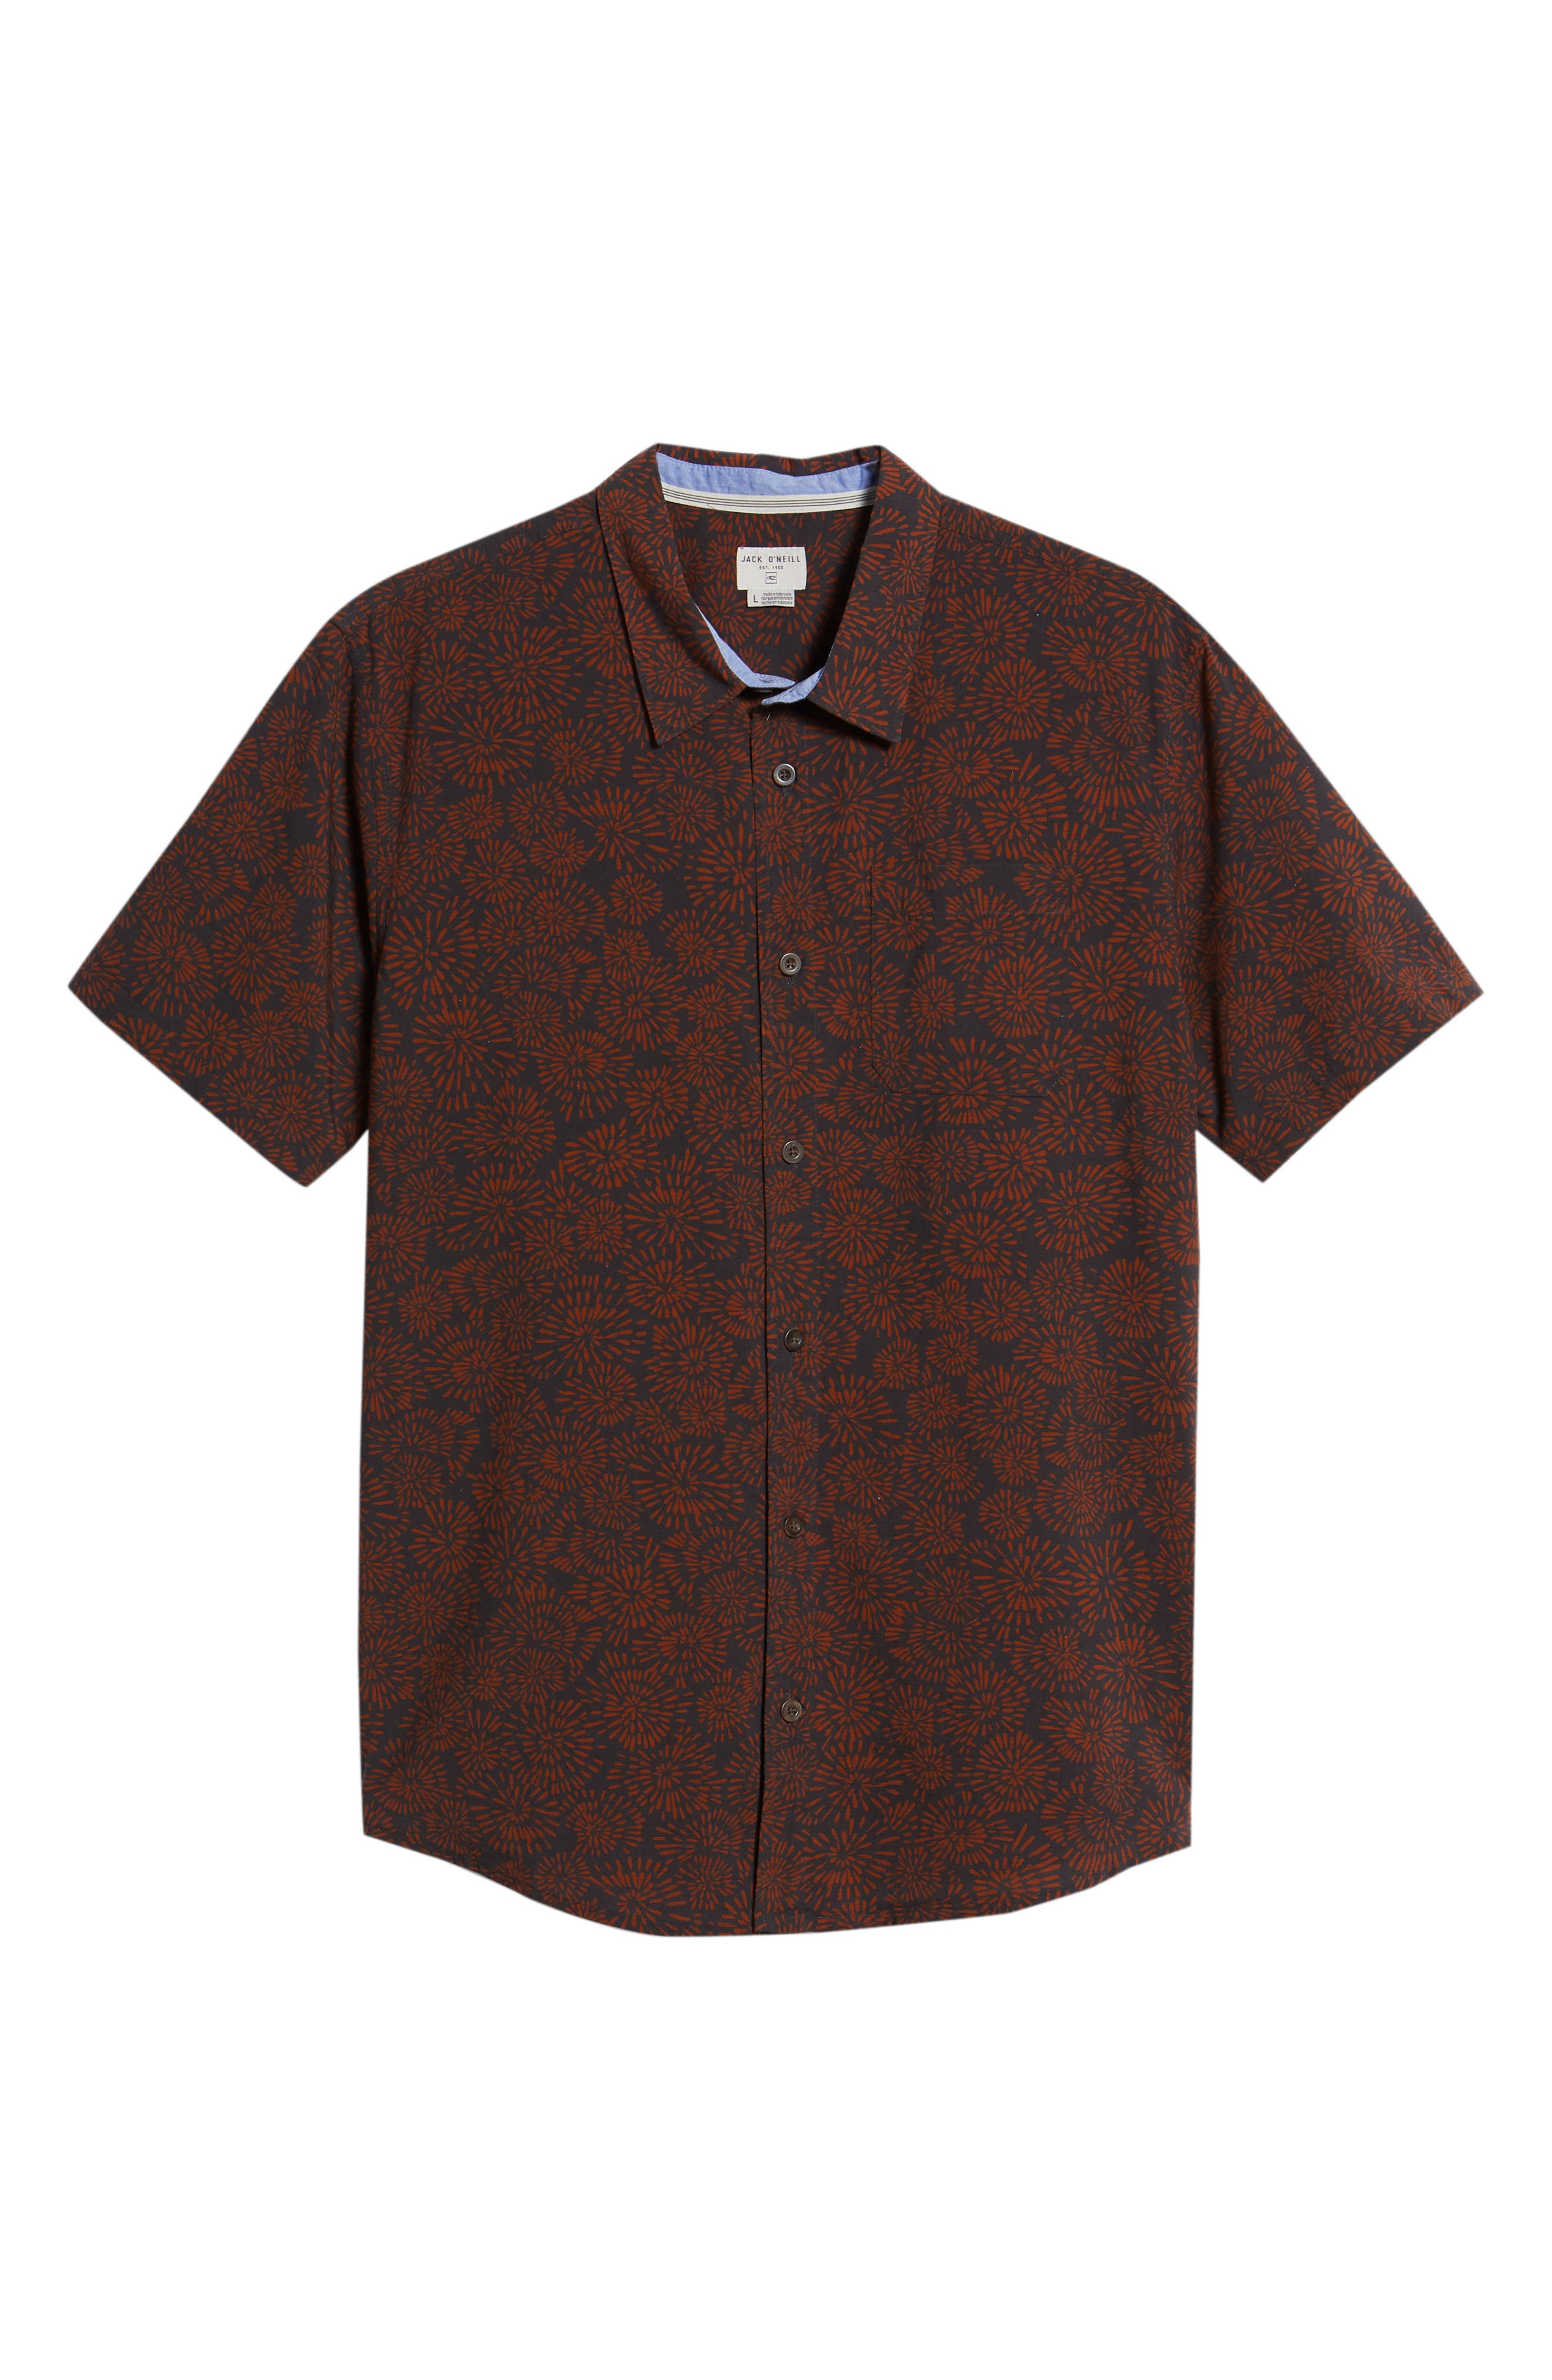 Upland Print Sport Shirt,                             Alternate thumbnail 6, color,                             020